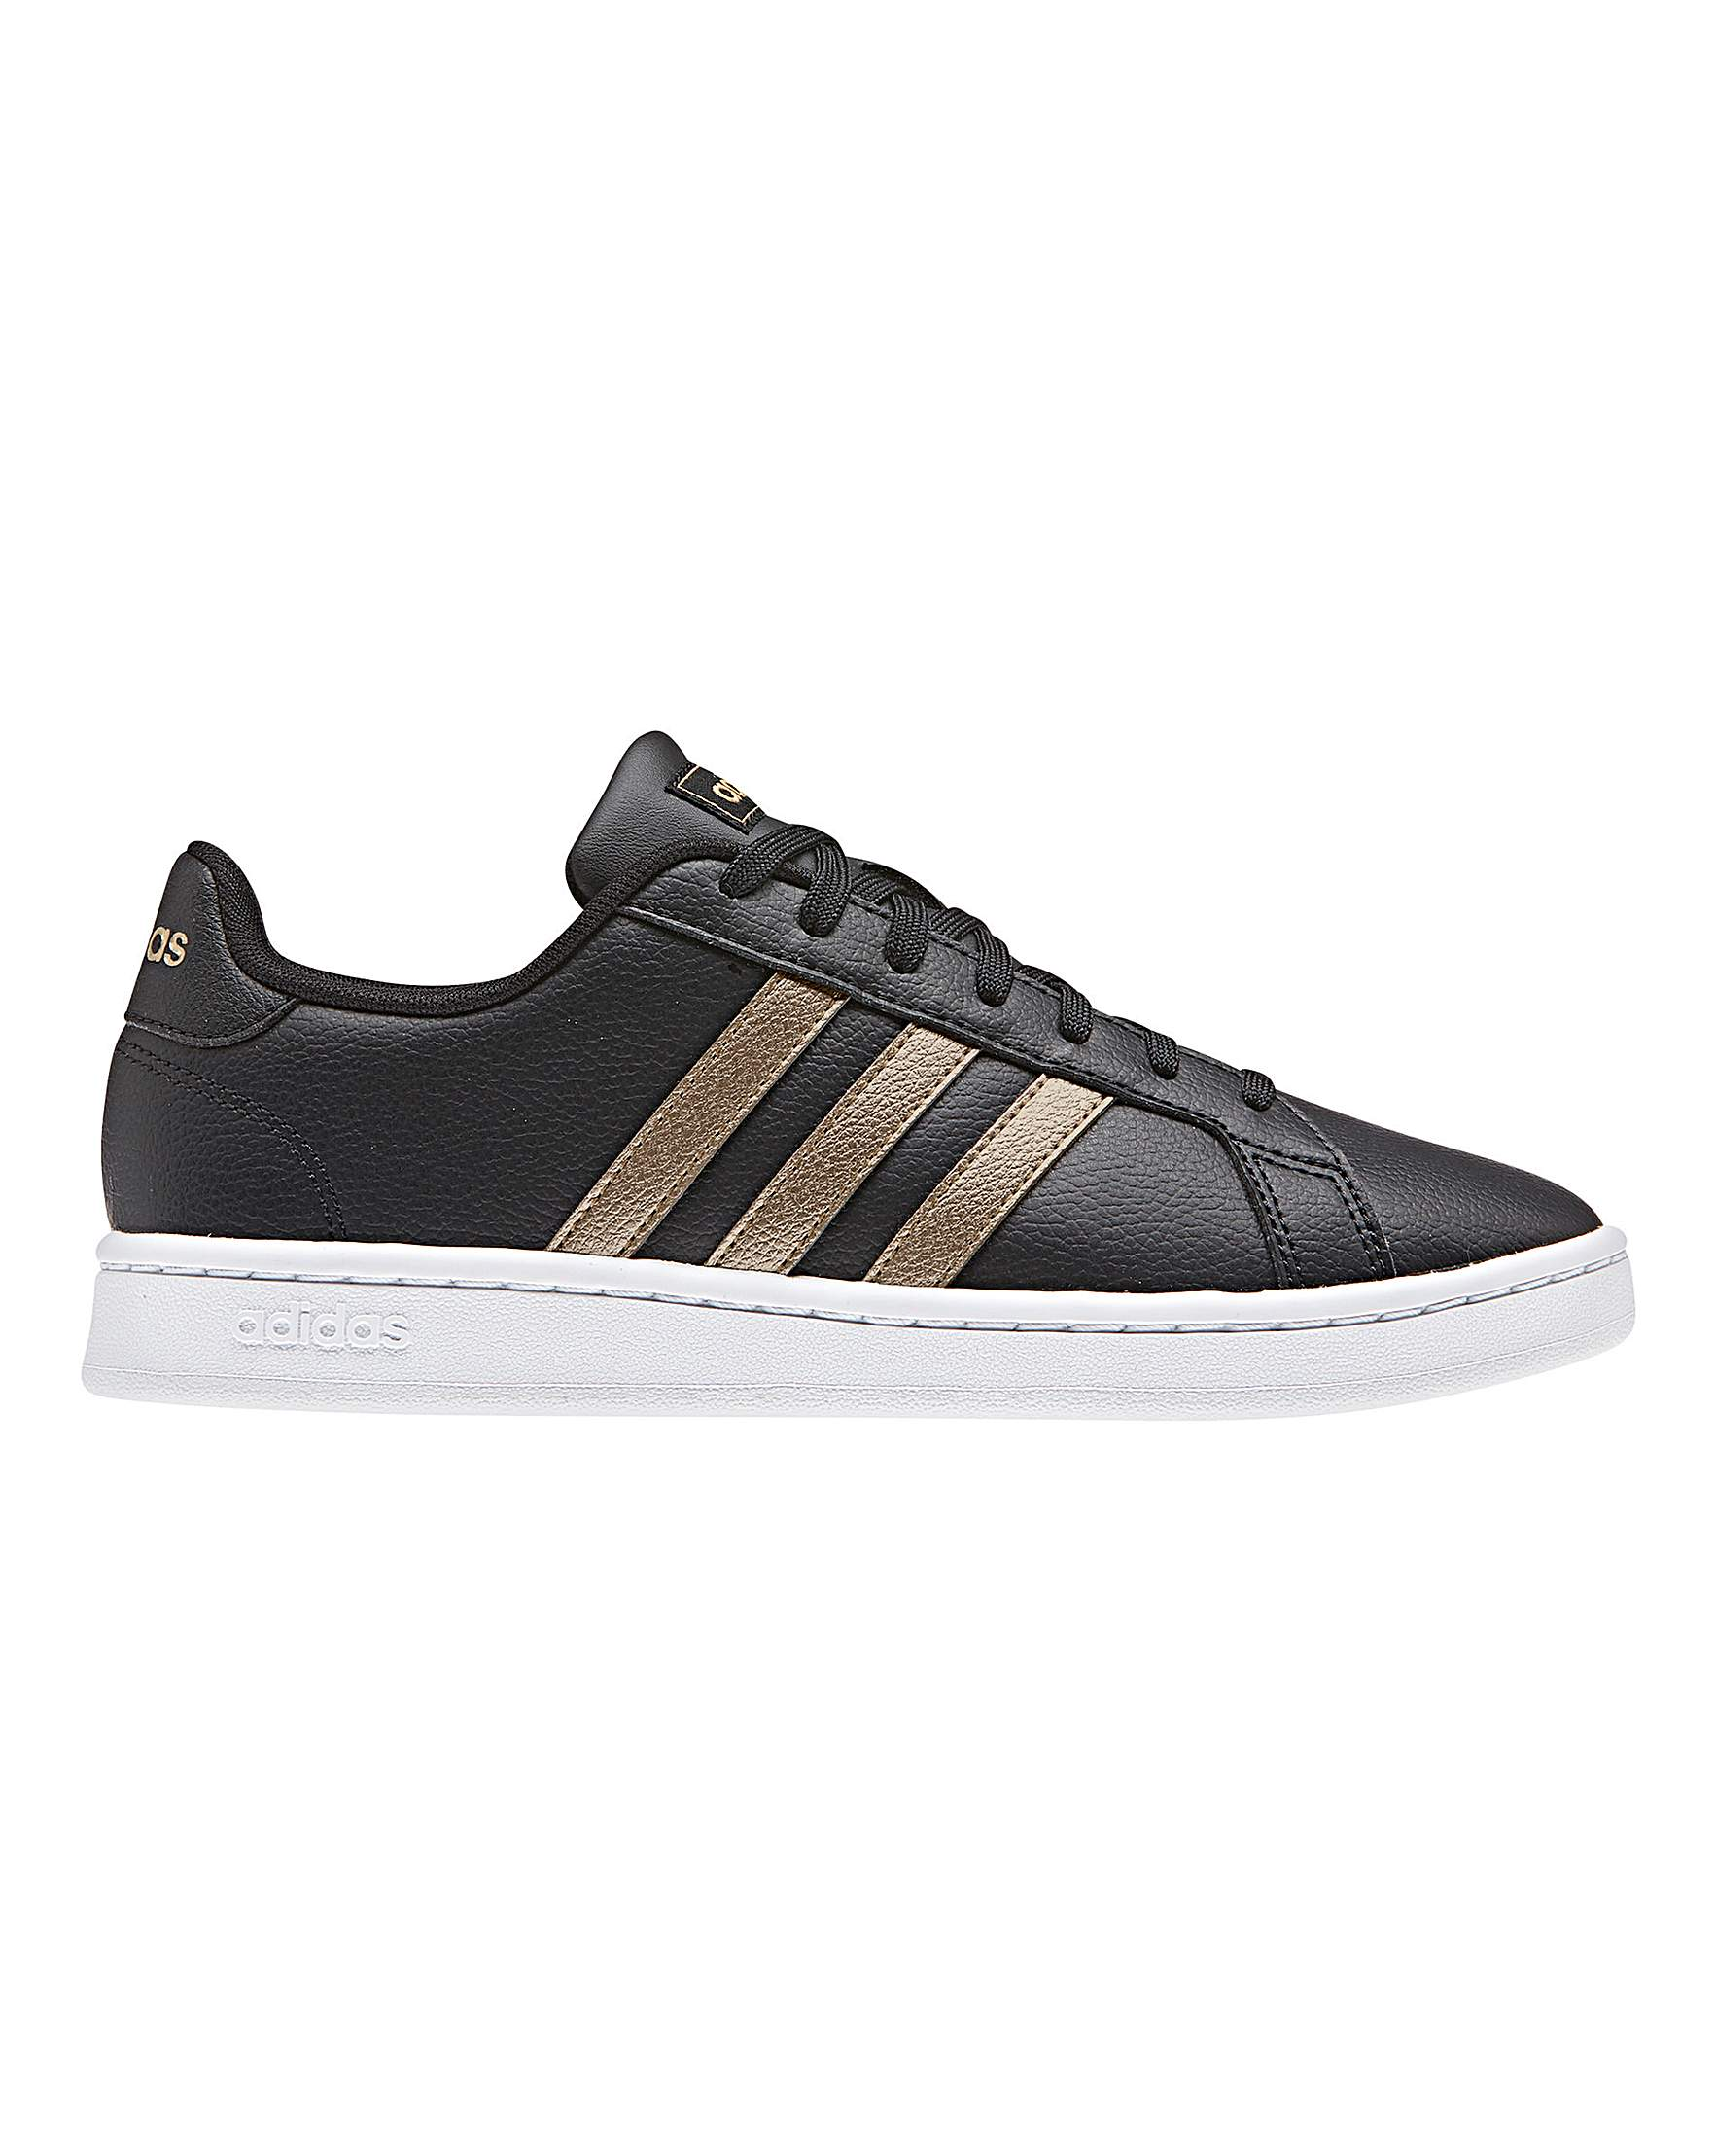 a2fc70f0b0 adidas Grand Court Trainers